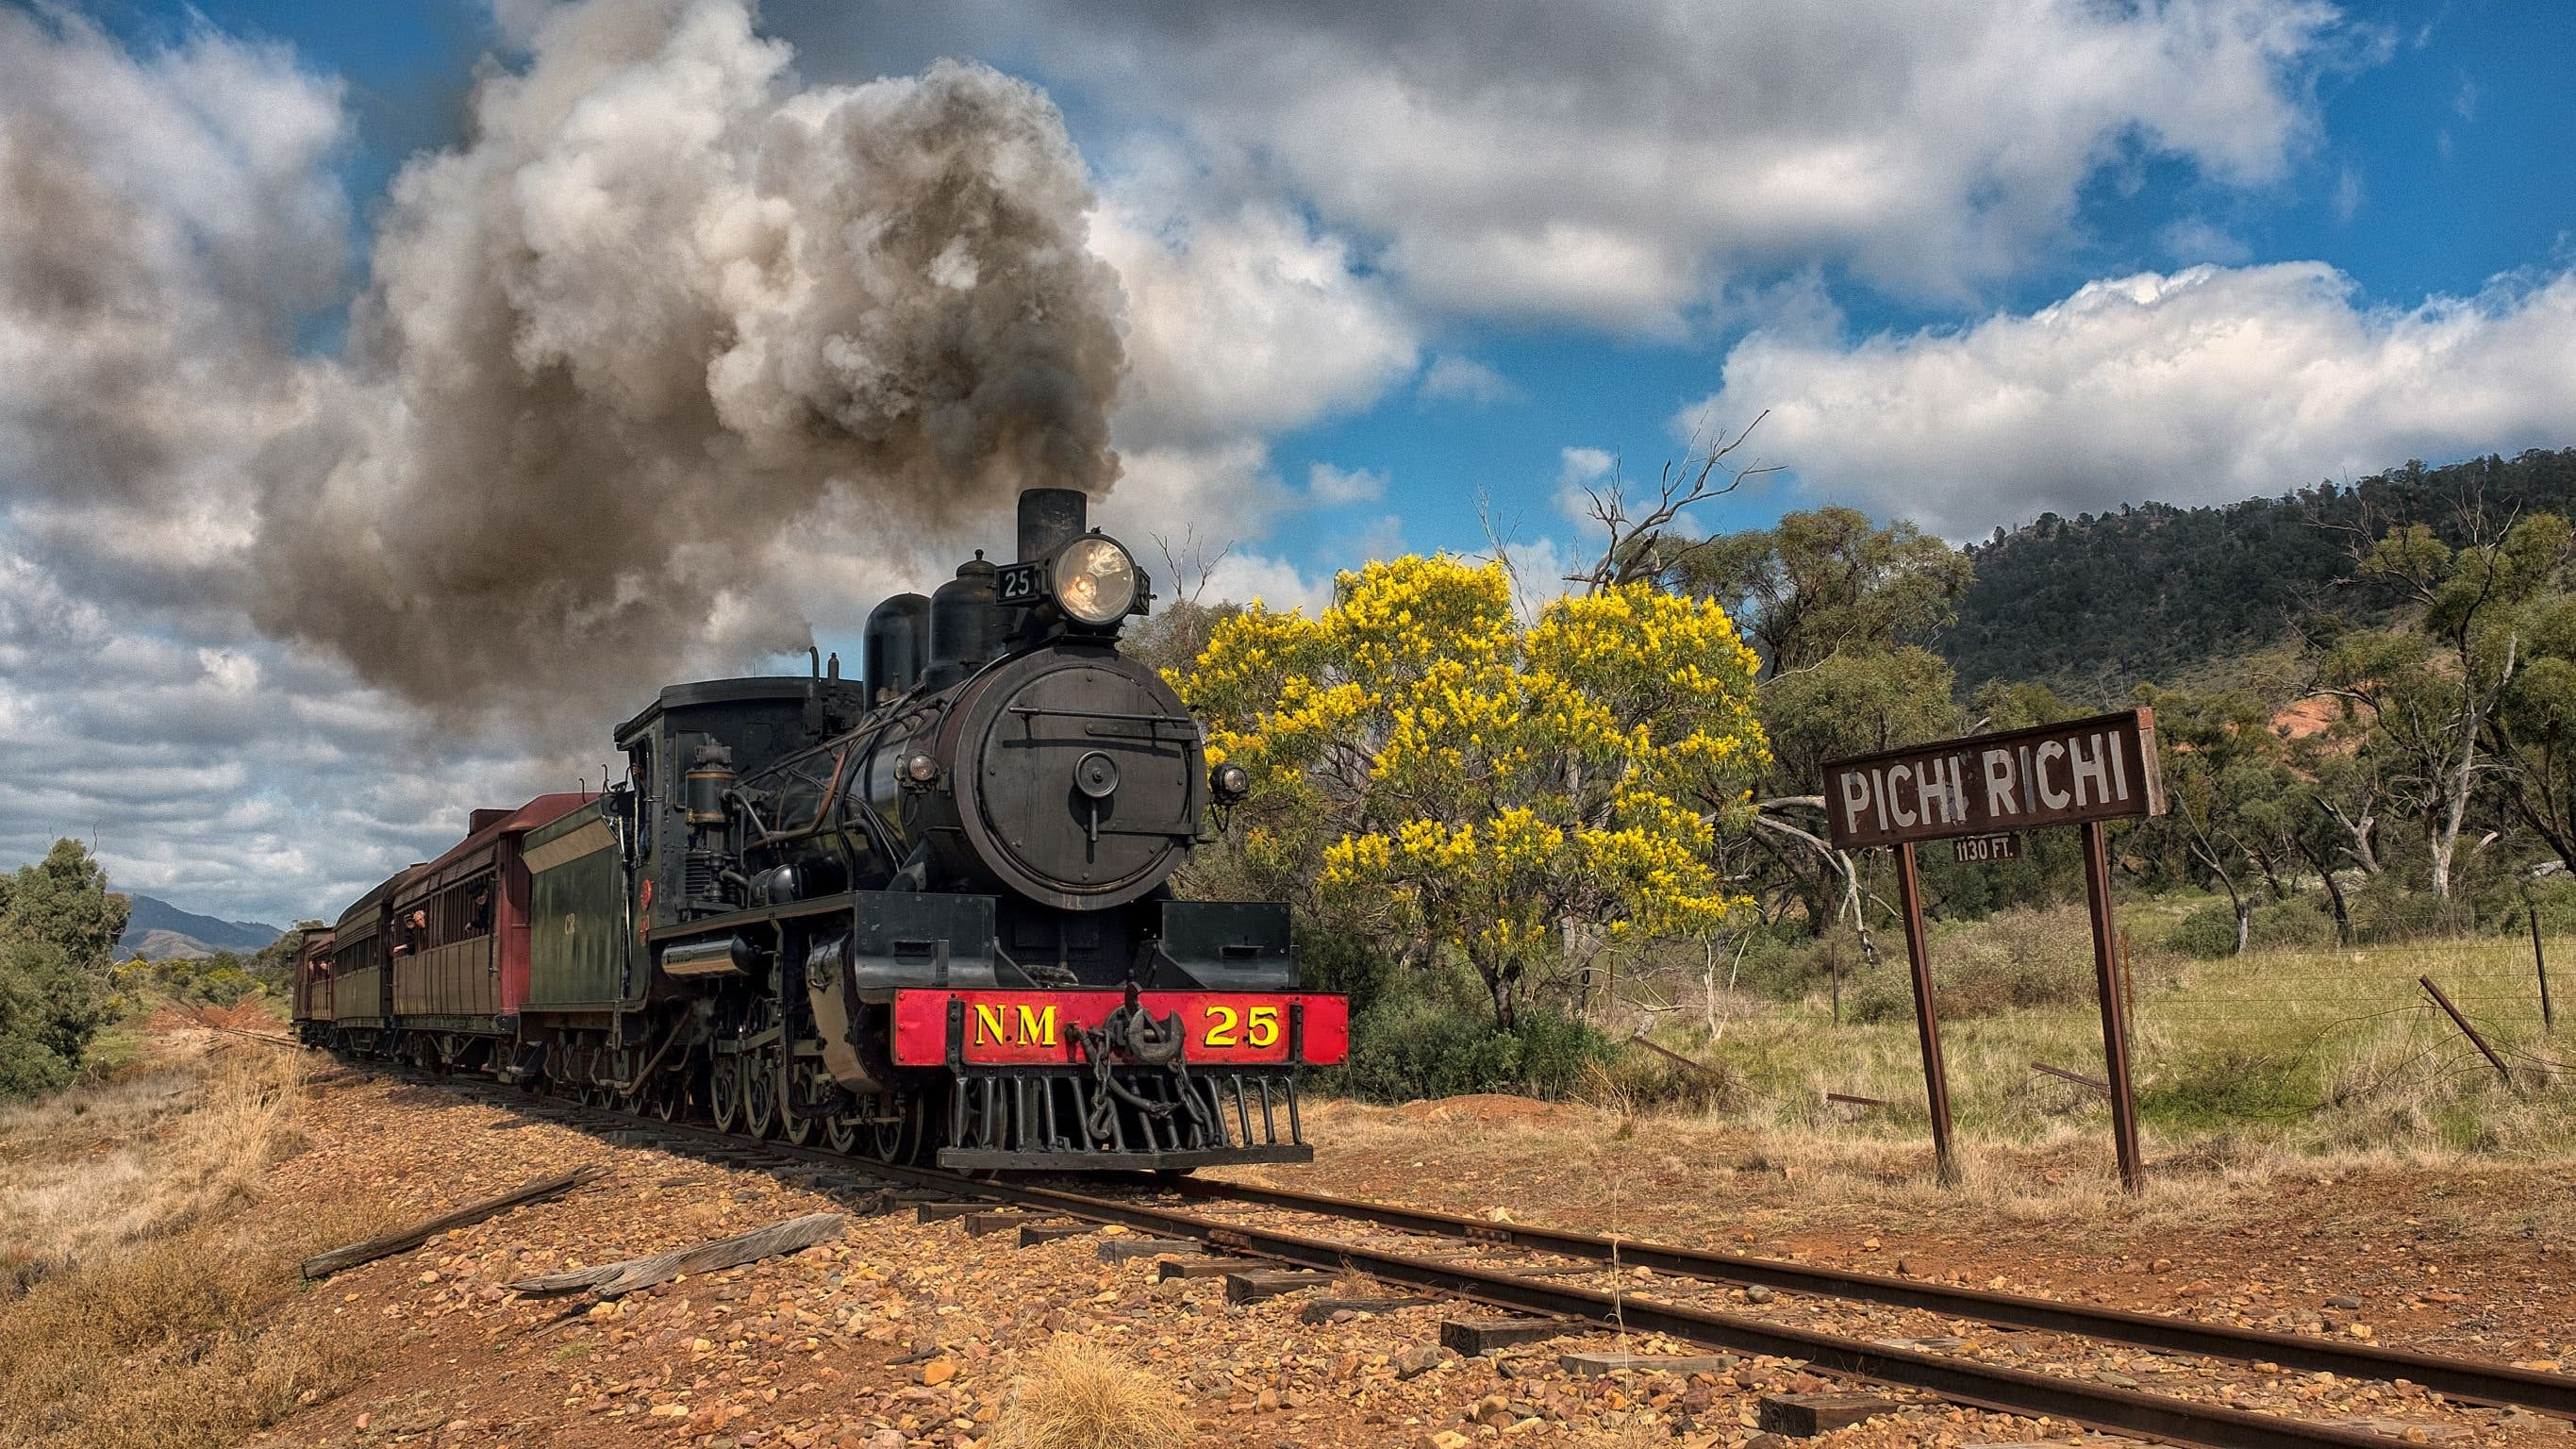 Pichi Richi Railway - Accommodation Sunshine Coast